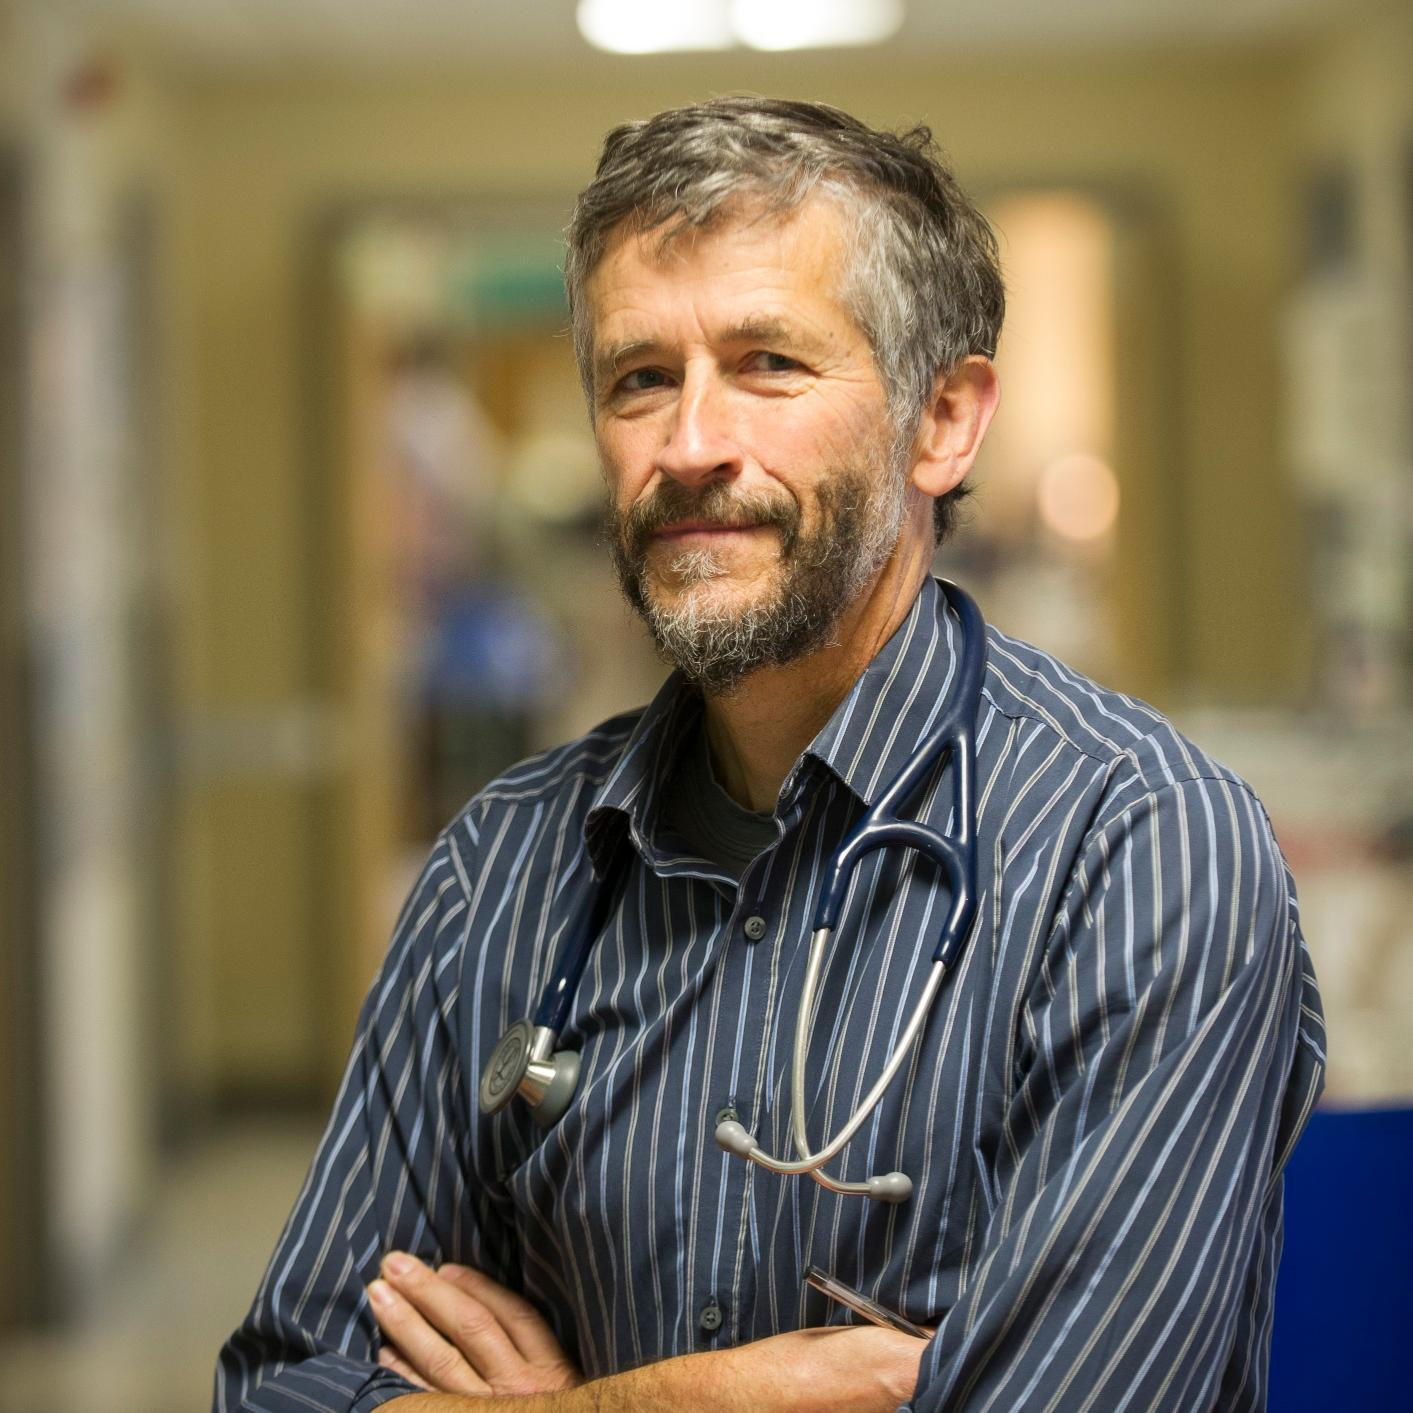 Professor Mike Lean is Positive that we can Reverse the Effects of Diabetes